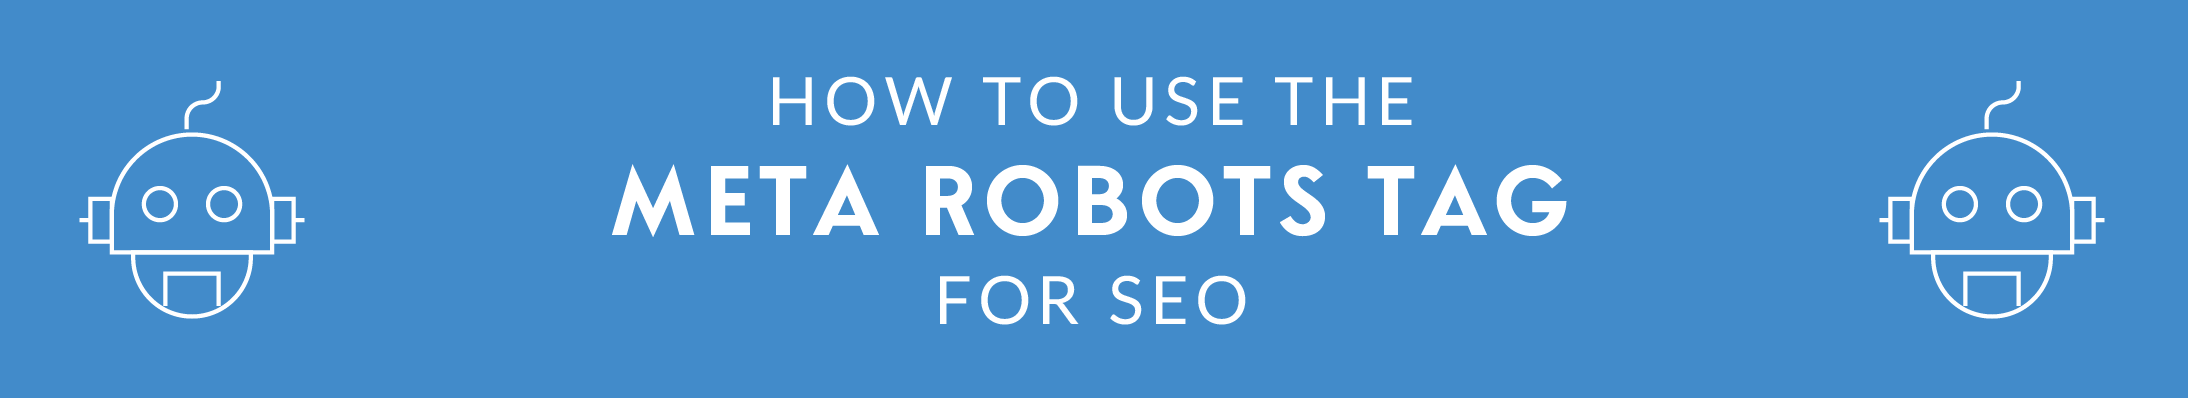 How to Use the Meta Robots Tag for SEO